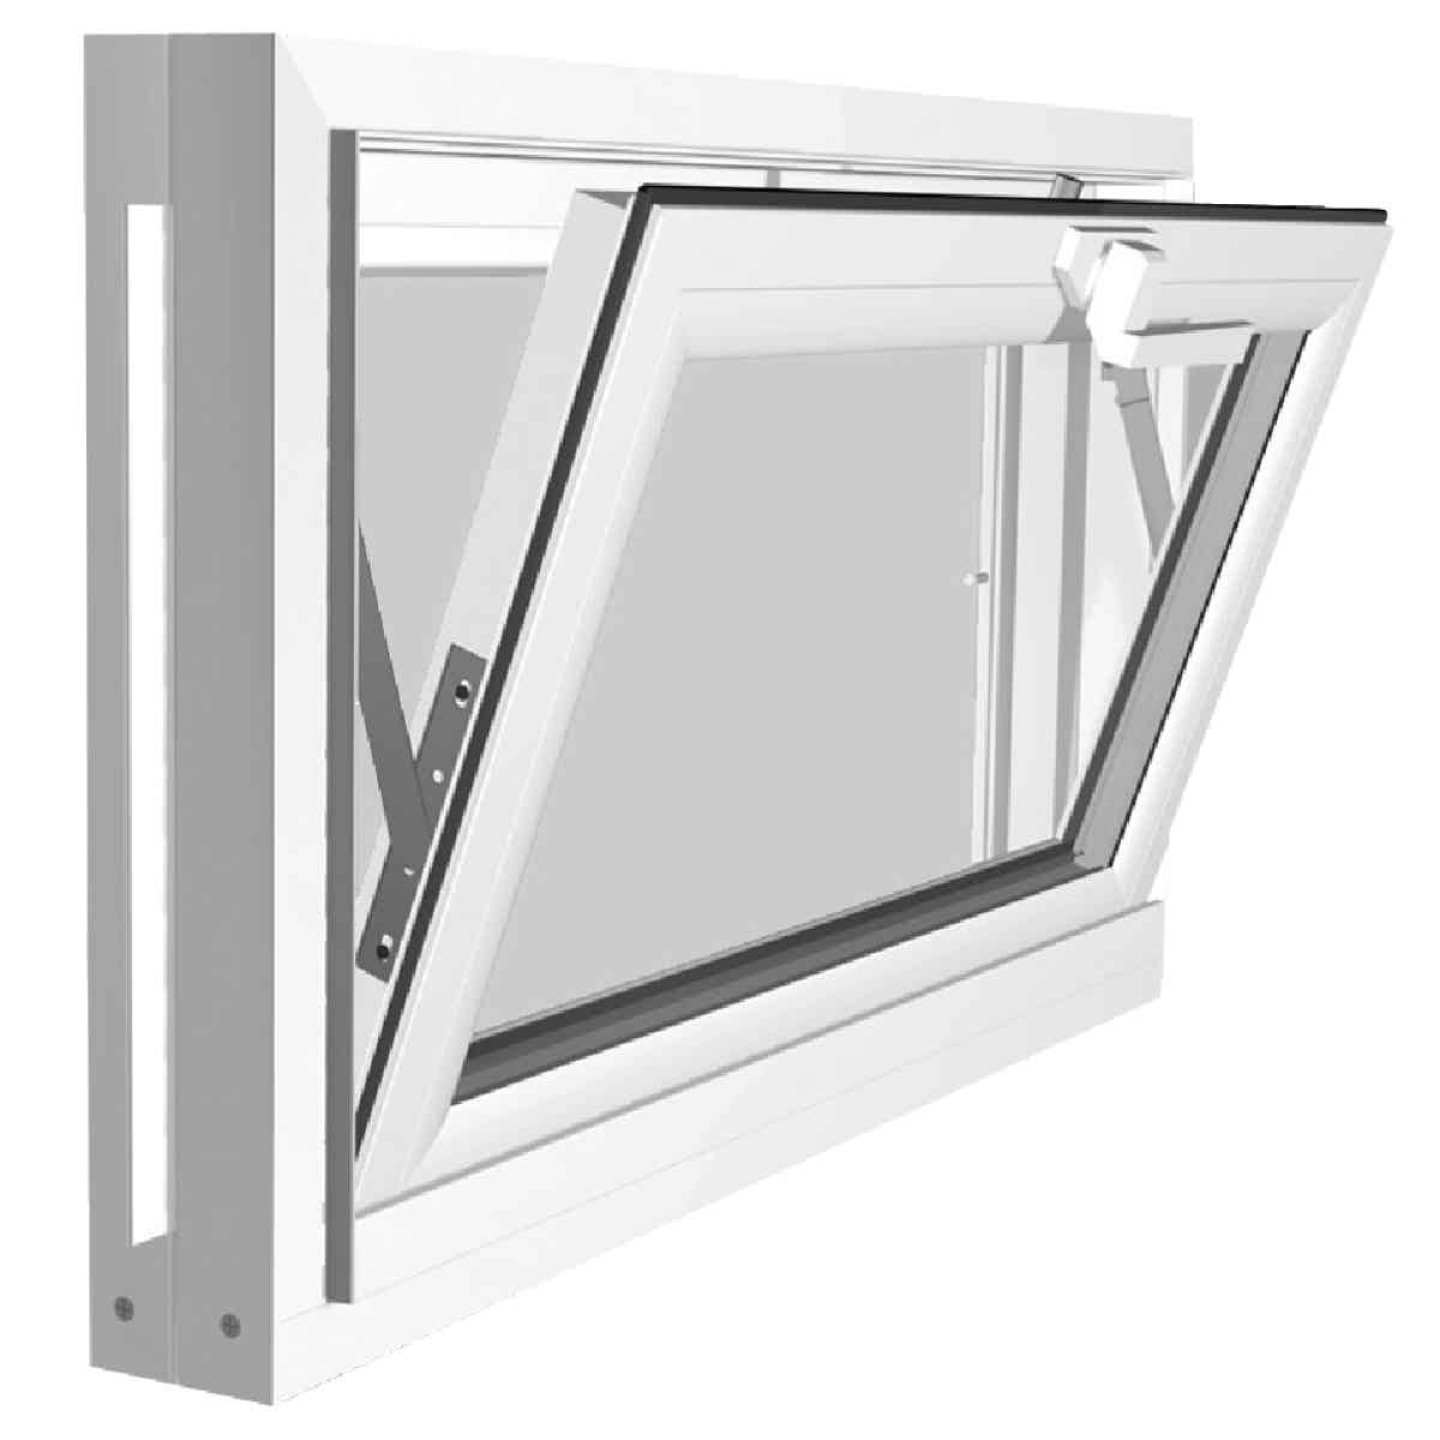 Northview Hemlock Hopper 32 In. W x 19-1/4 In. H White PVC Basement Window Image 2